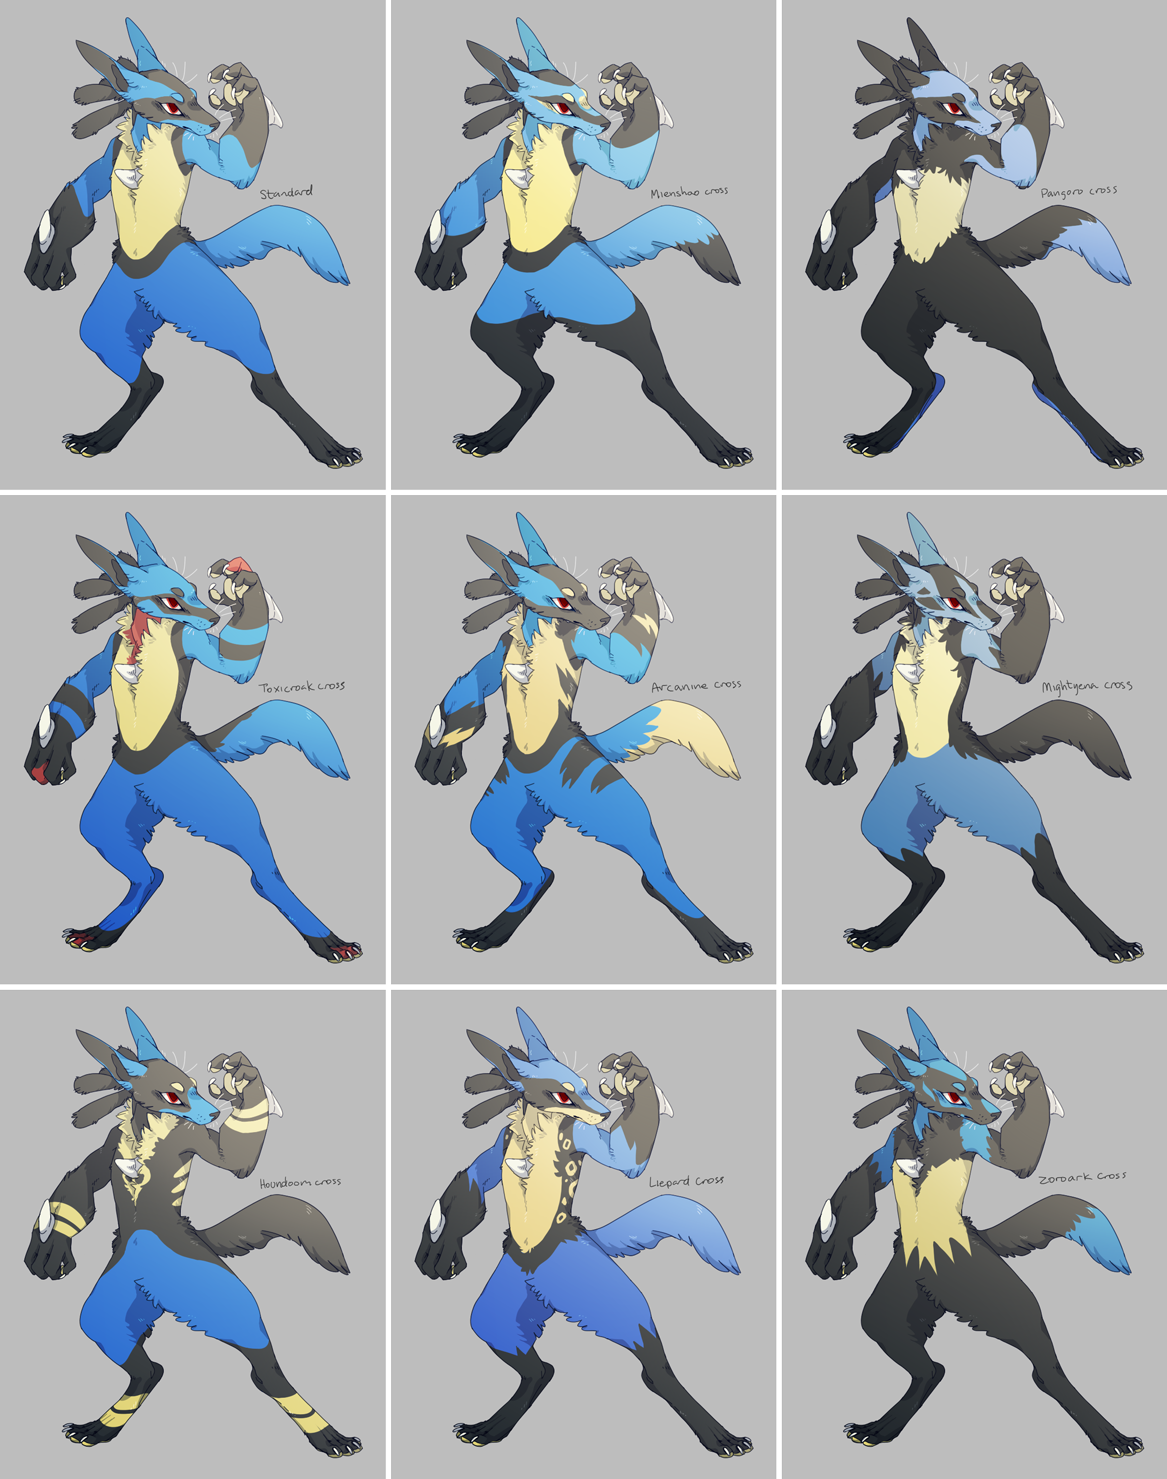 Pokemon Breed Variations Images | Pokemon Images